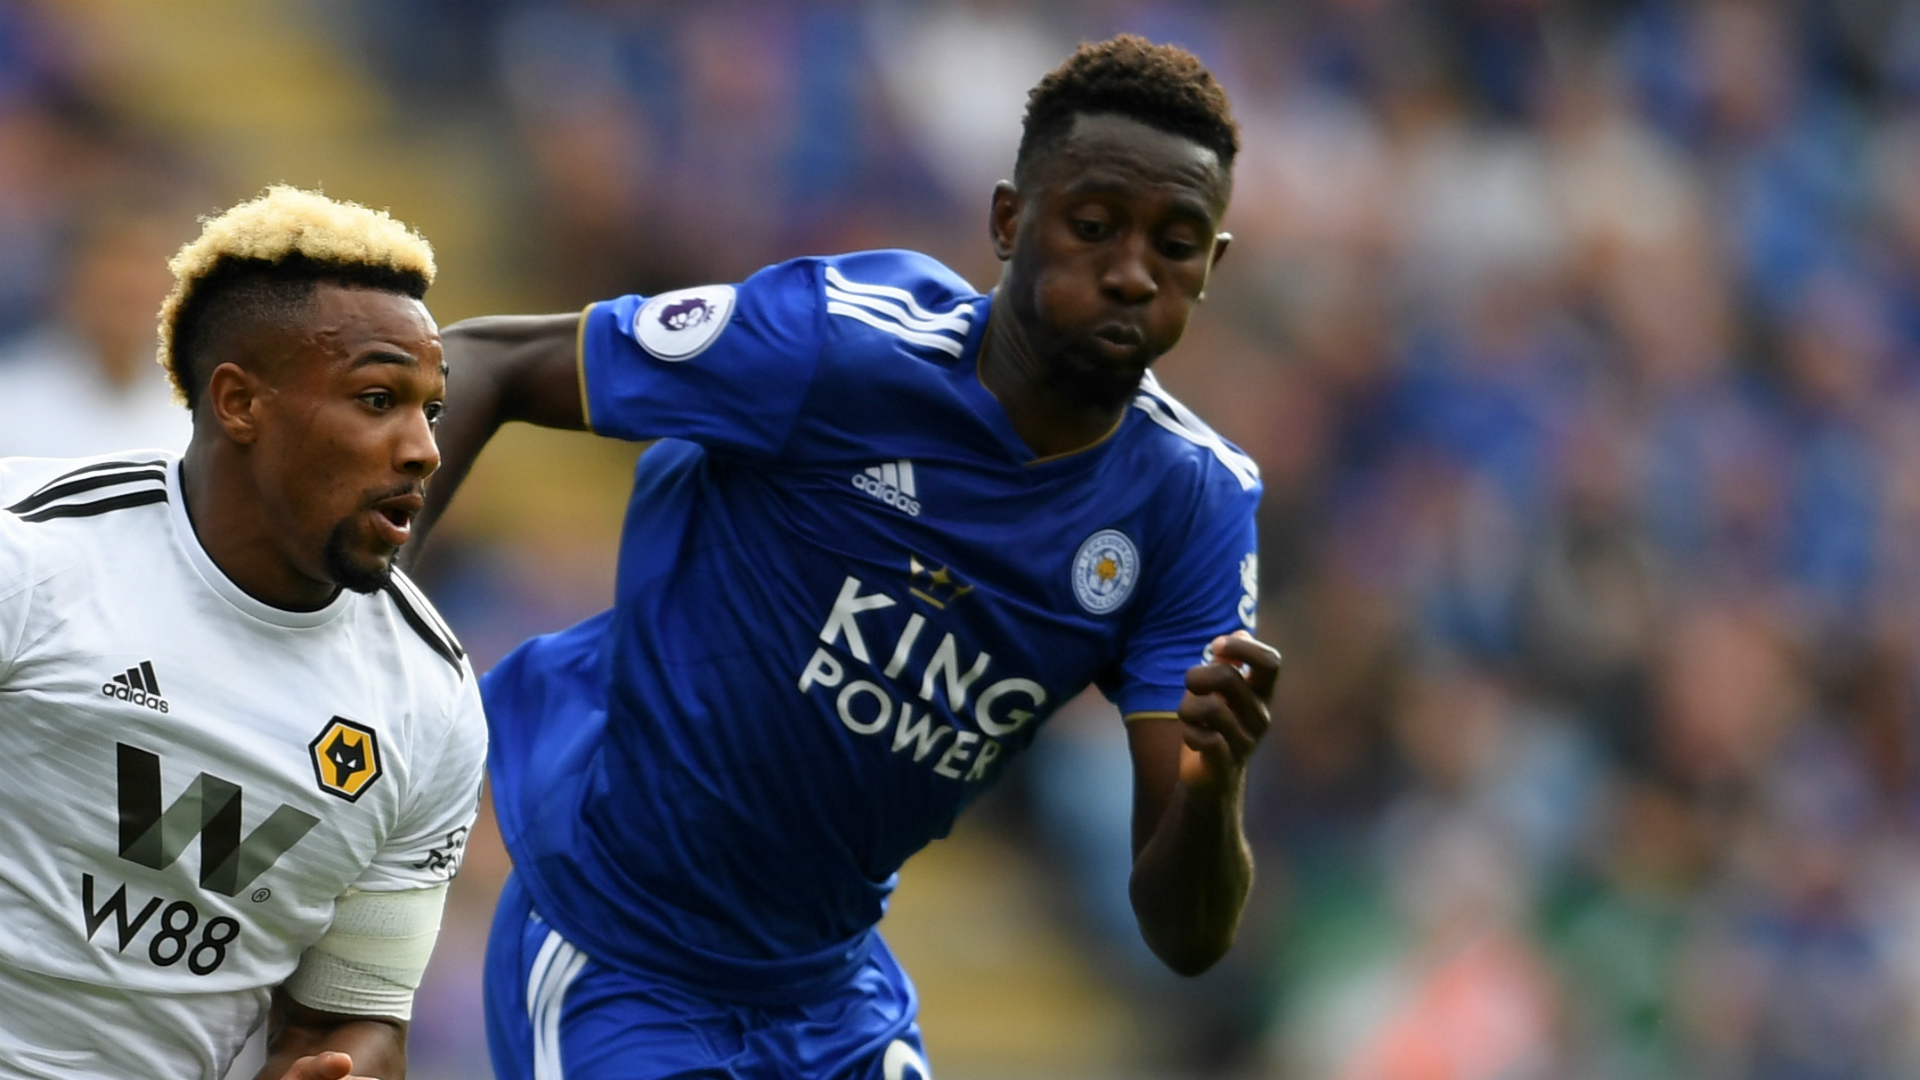 Adama-traore-wilfred-ndidi-leicester-city-v-wolverhampton-wanderers-premier-league_1duotqt4sy01911kqpy7pg0i8d